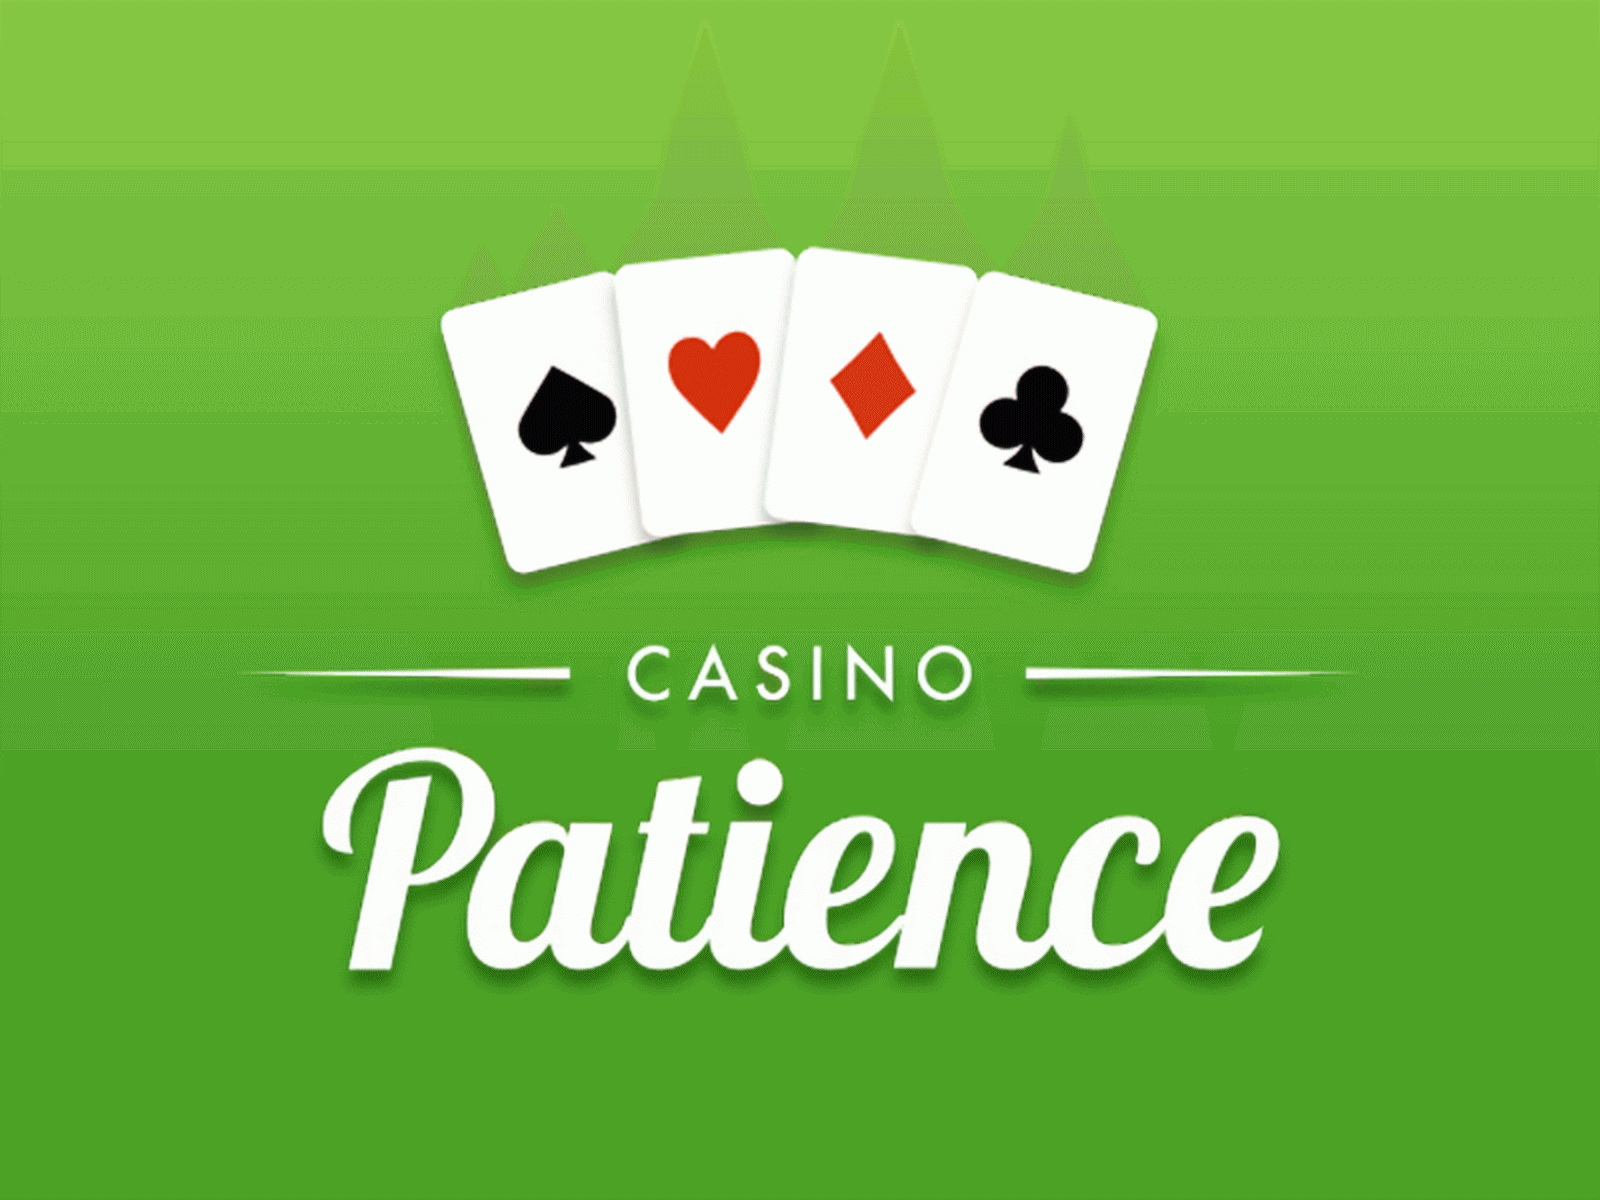 The Casino Patience (Oryx) Online Slot Demo Game by Oryx